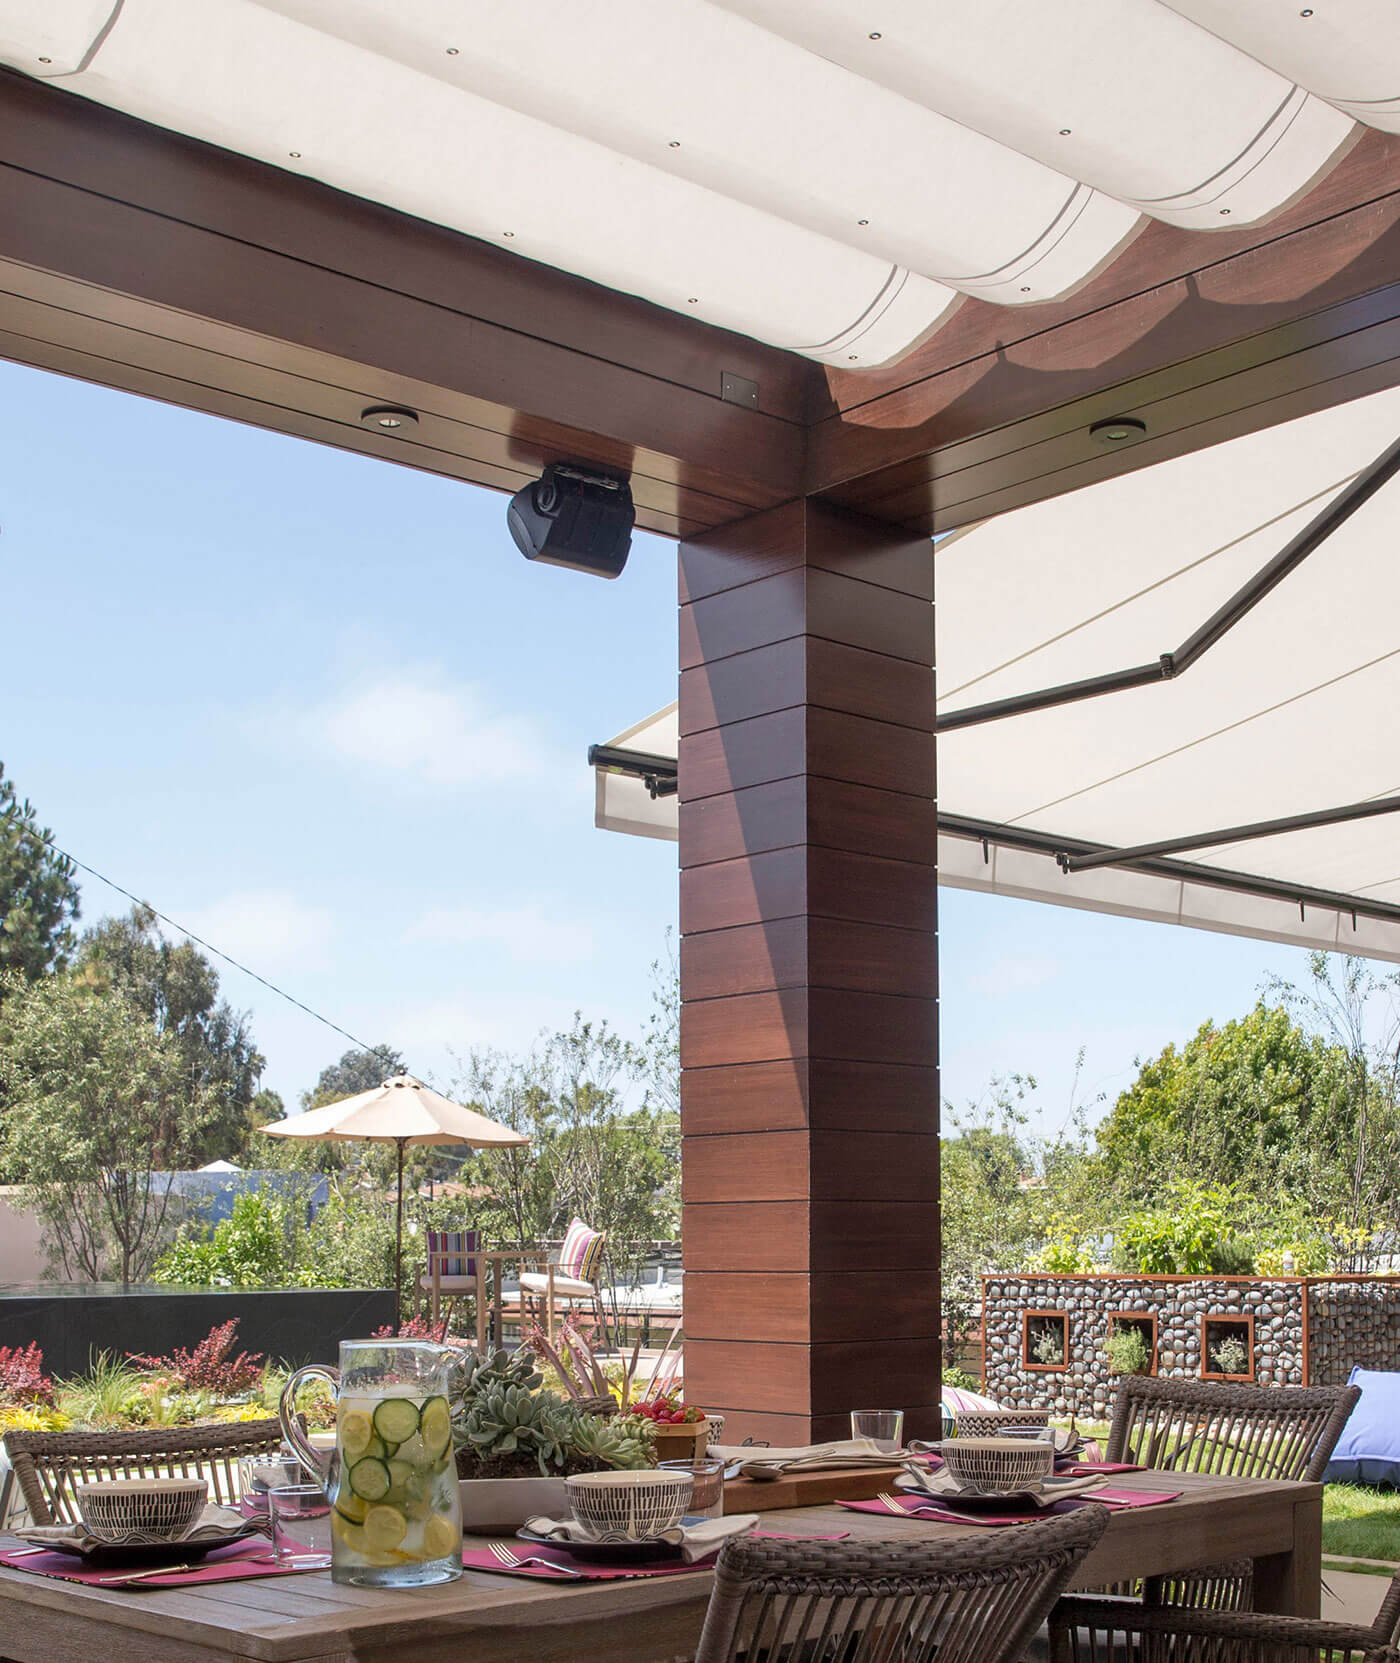 A Patio Is Shaded By Pergola And Retractable Awning Made With Sunbrella Fabrics